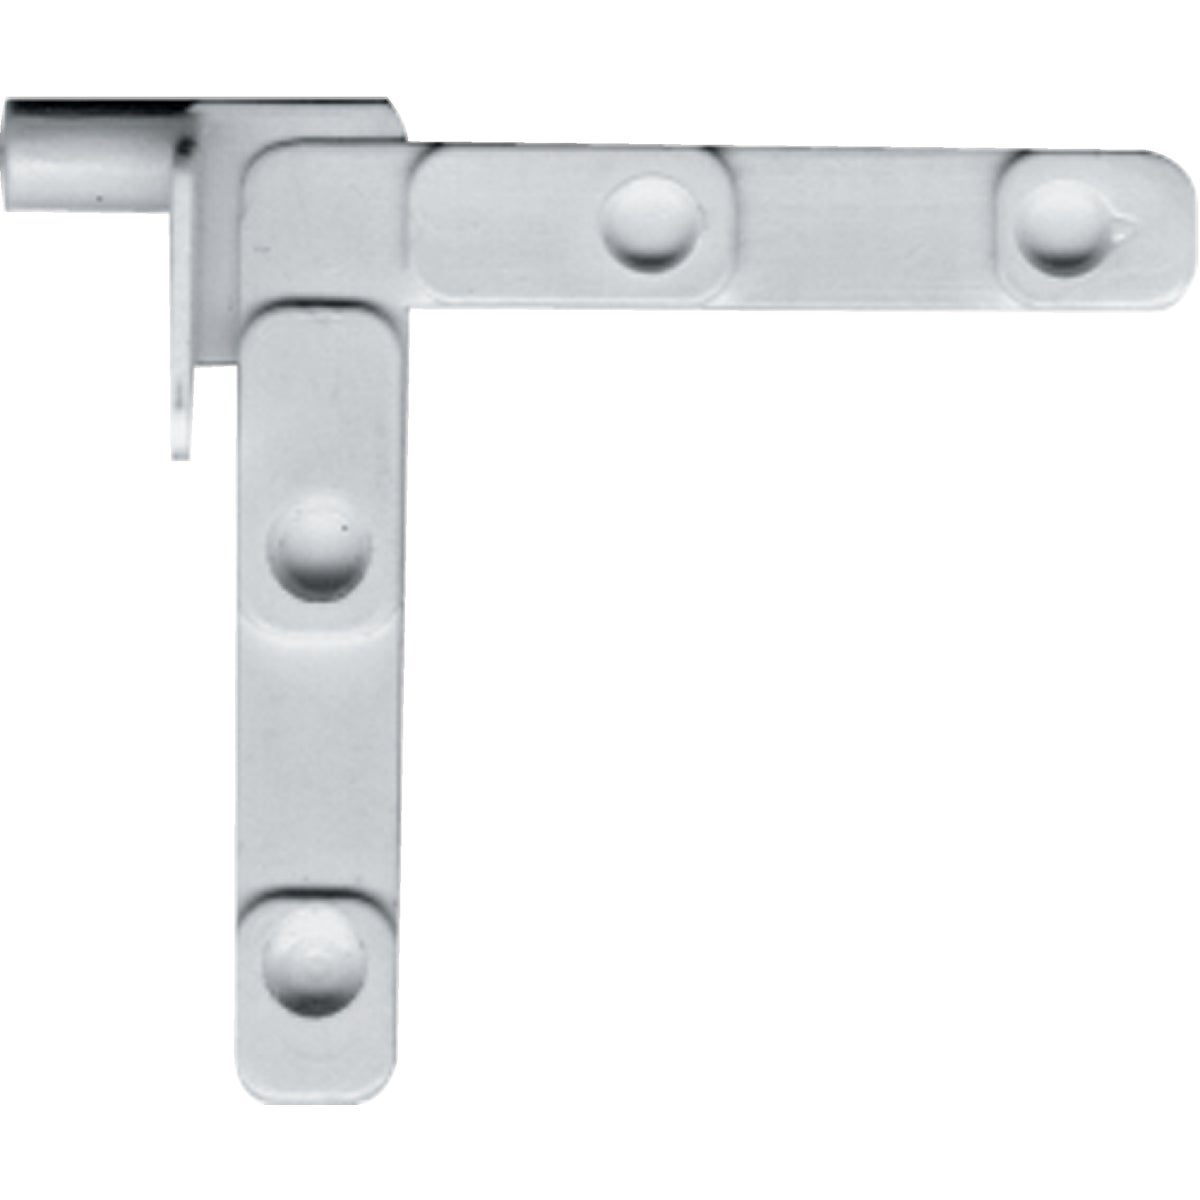 5/32X7/32 NYLON TILT KEY - PL15134 by Prime Line Products